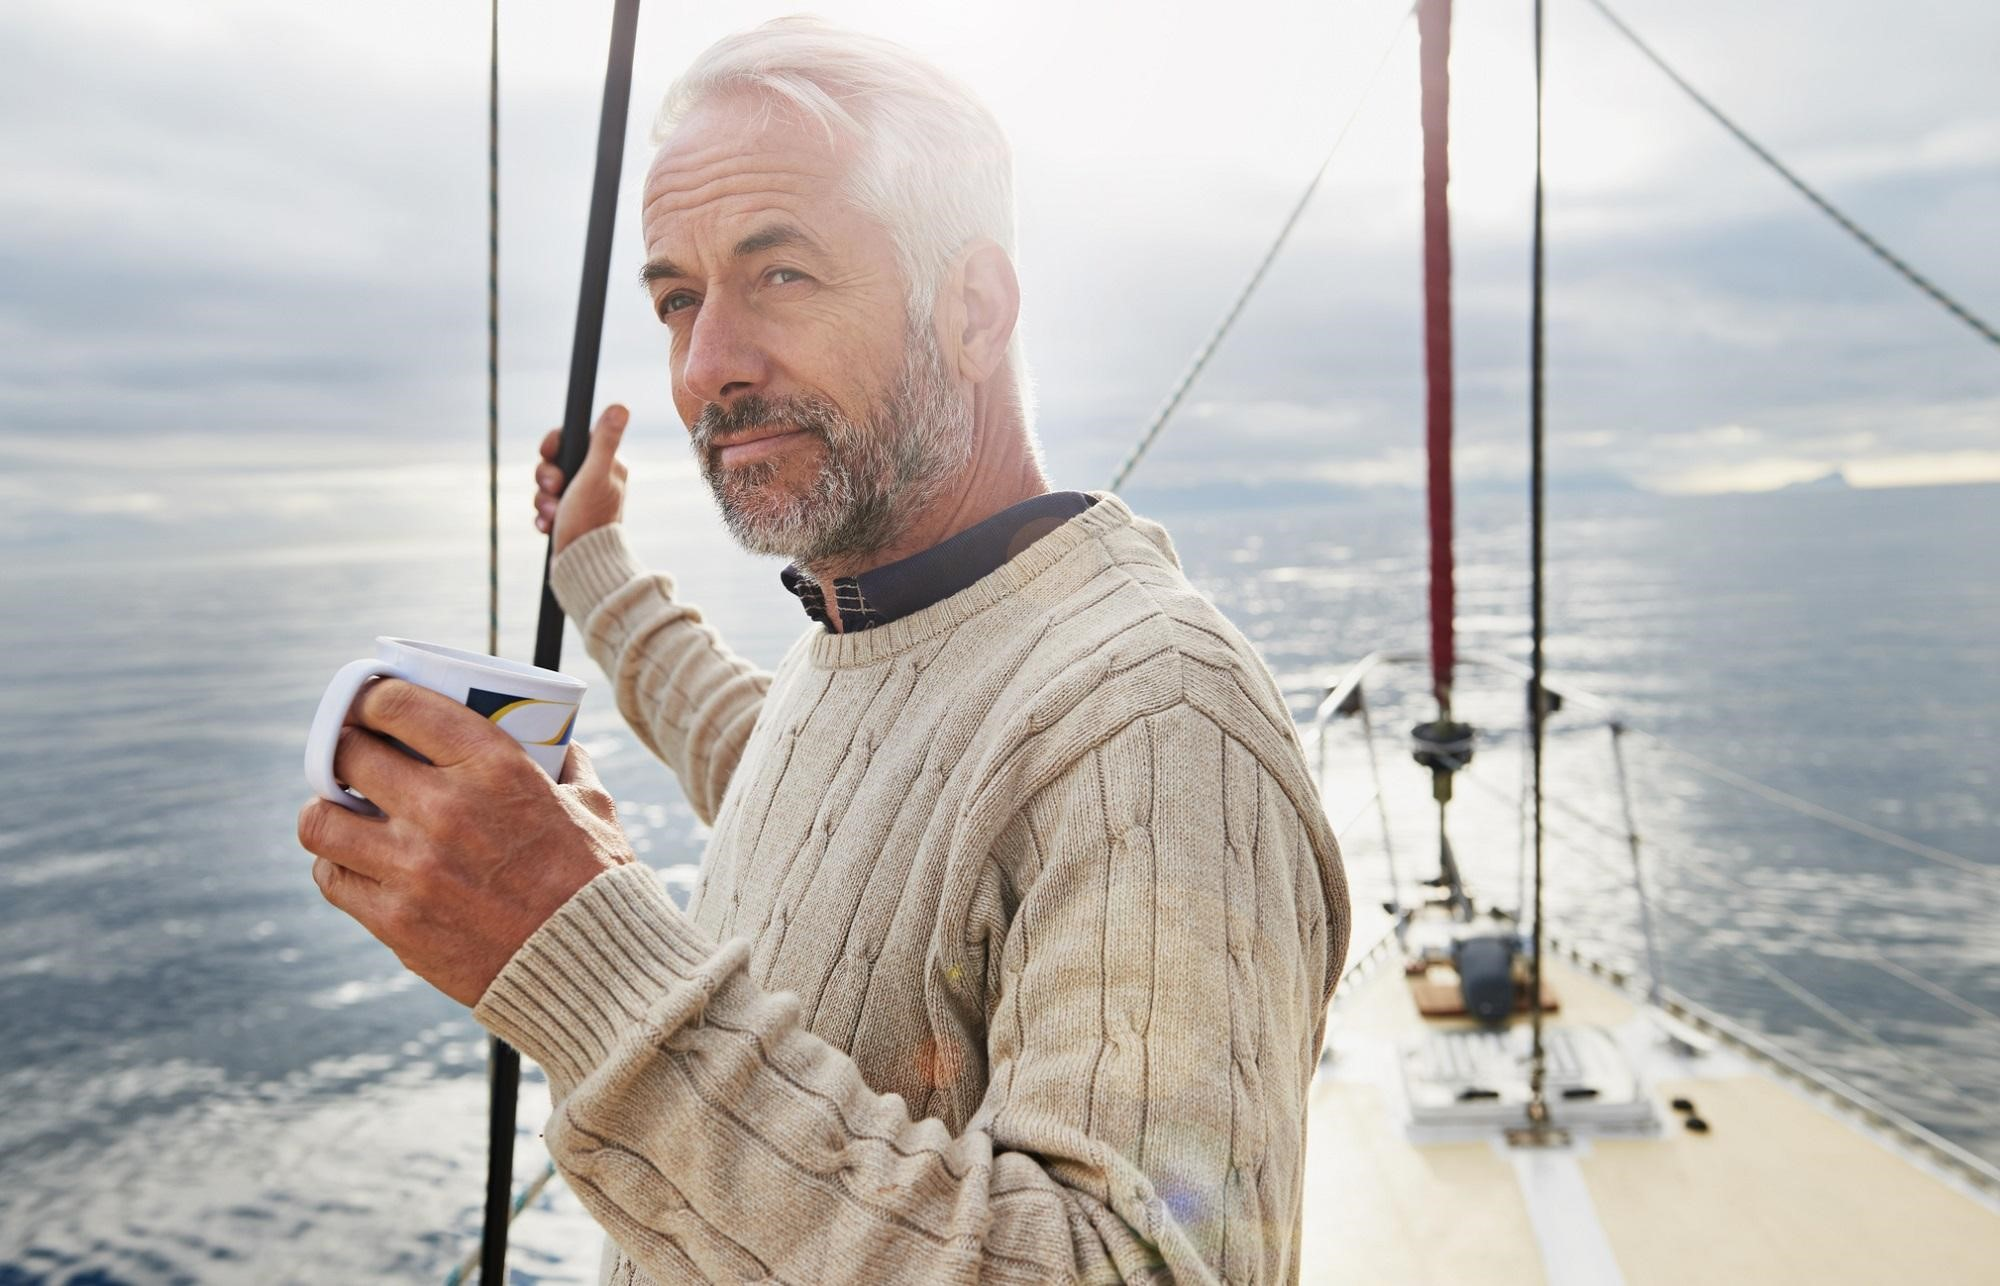 An older man wearing a sweater on a boat